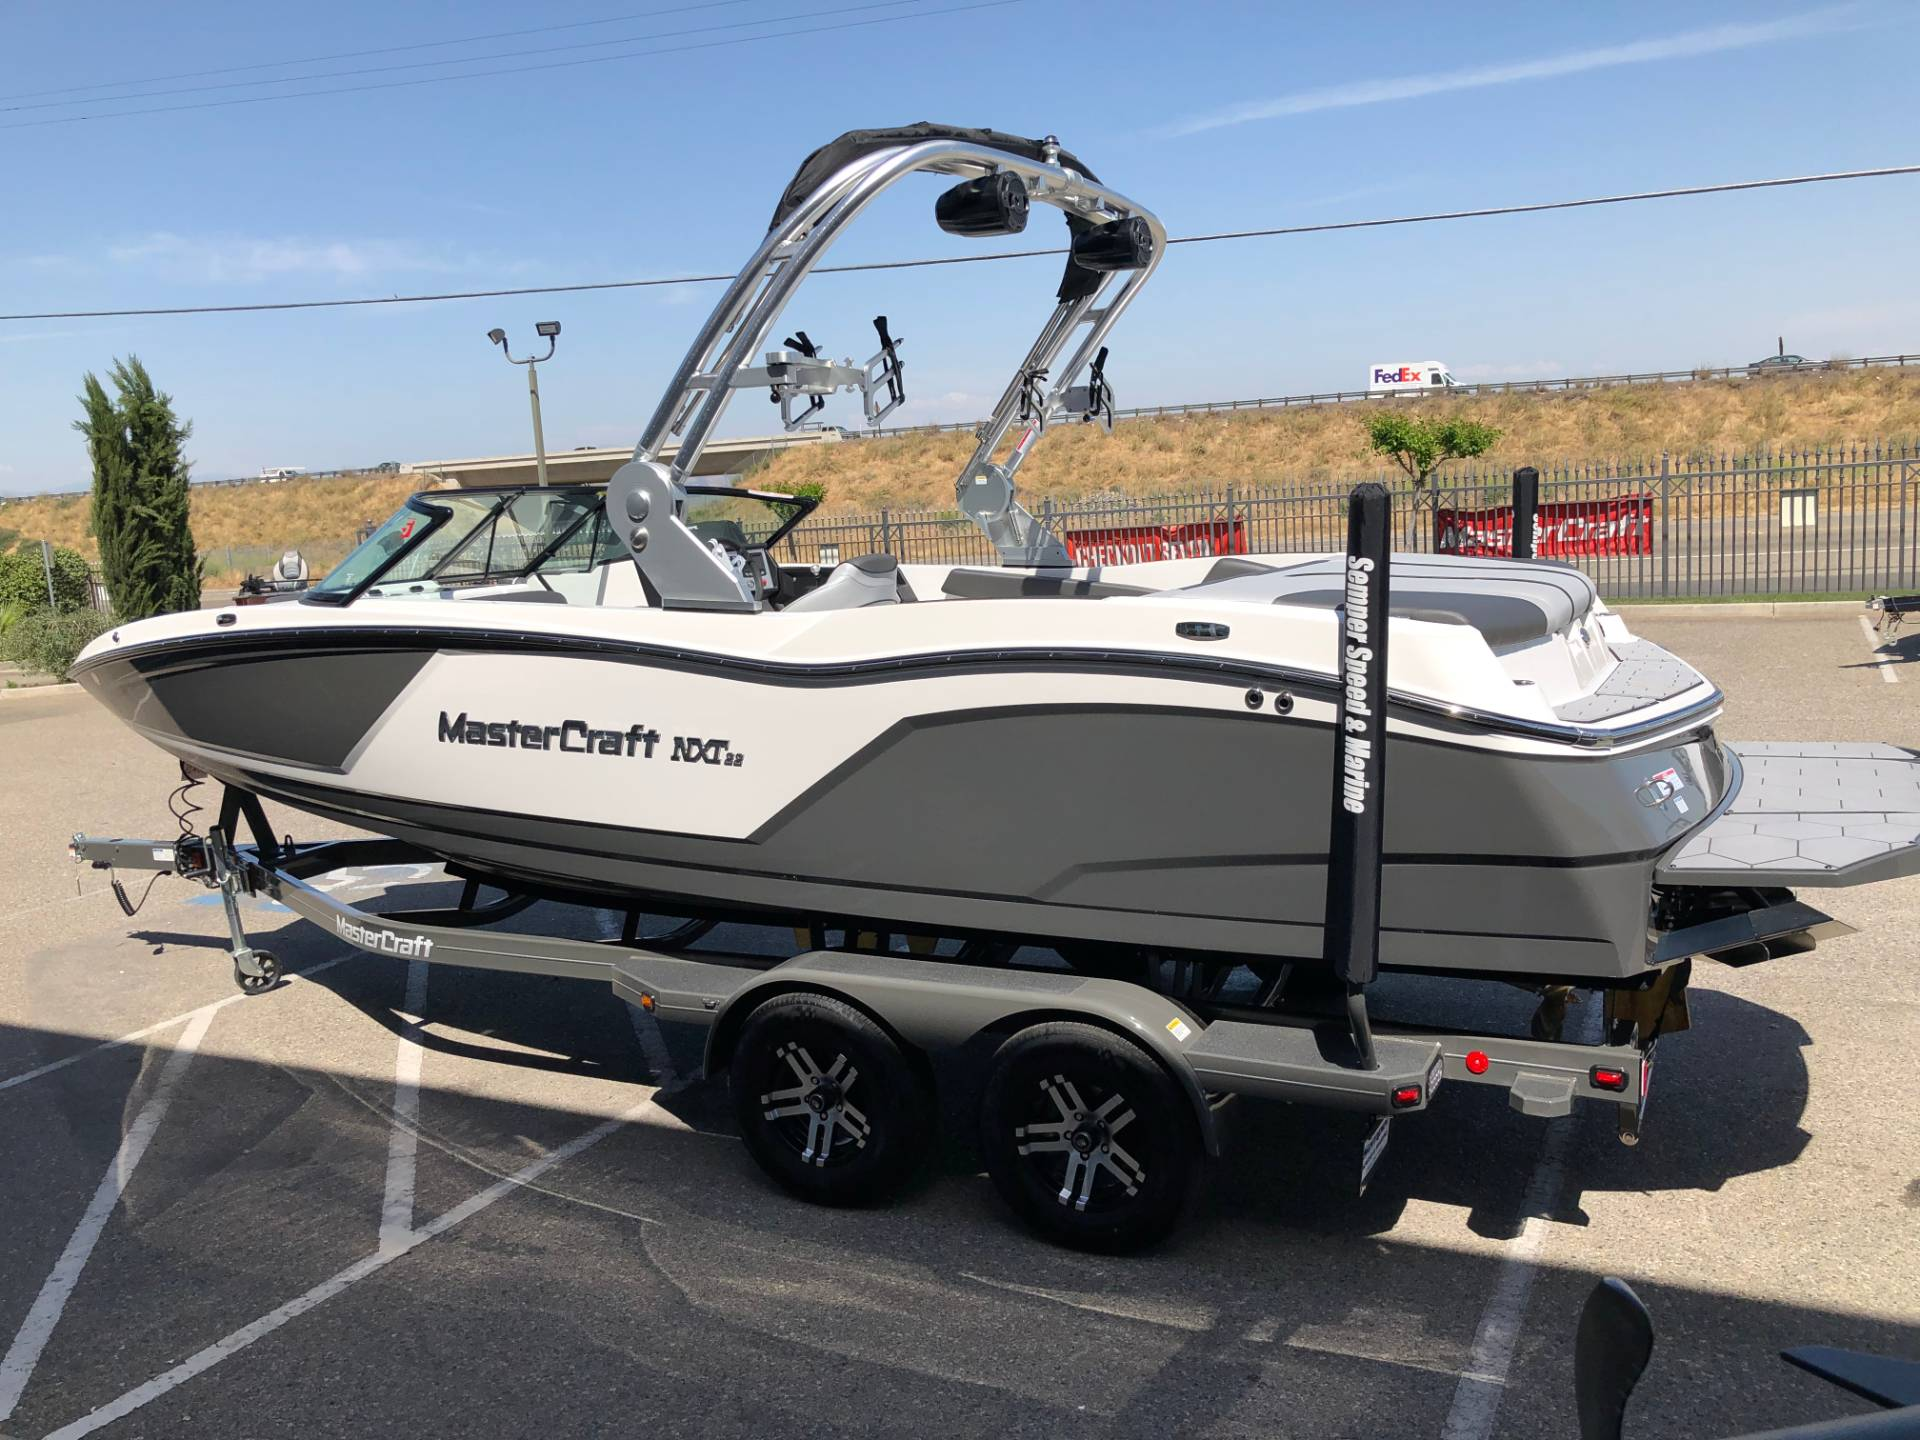 2019 Mastercraft NXT22 in Madera, California - Photo 2